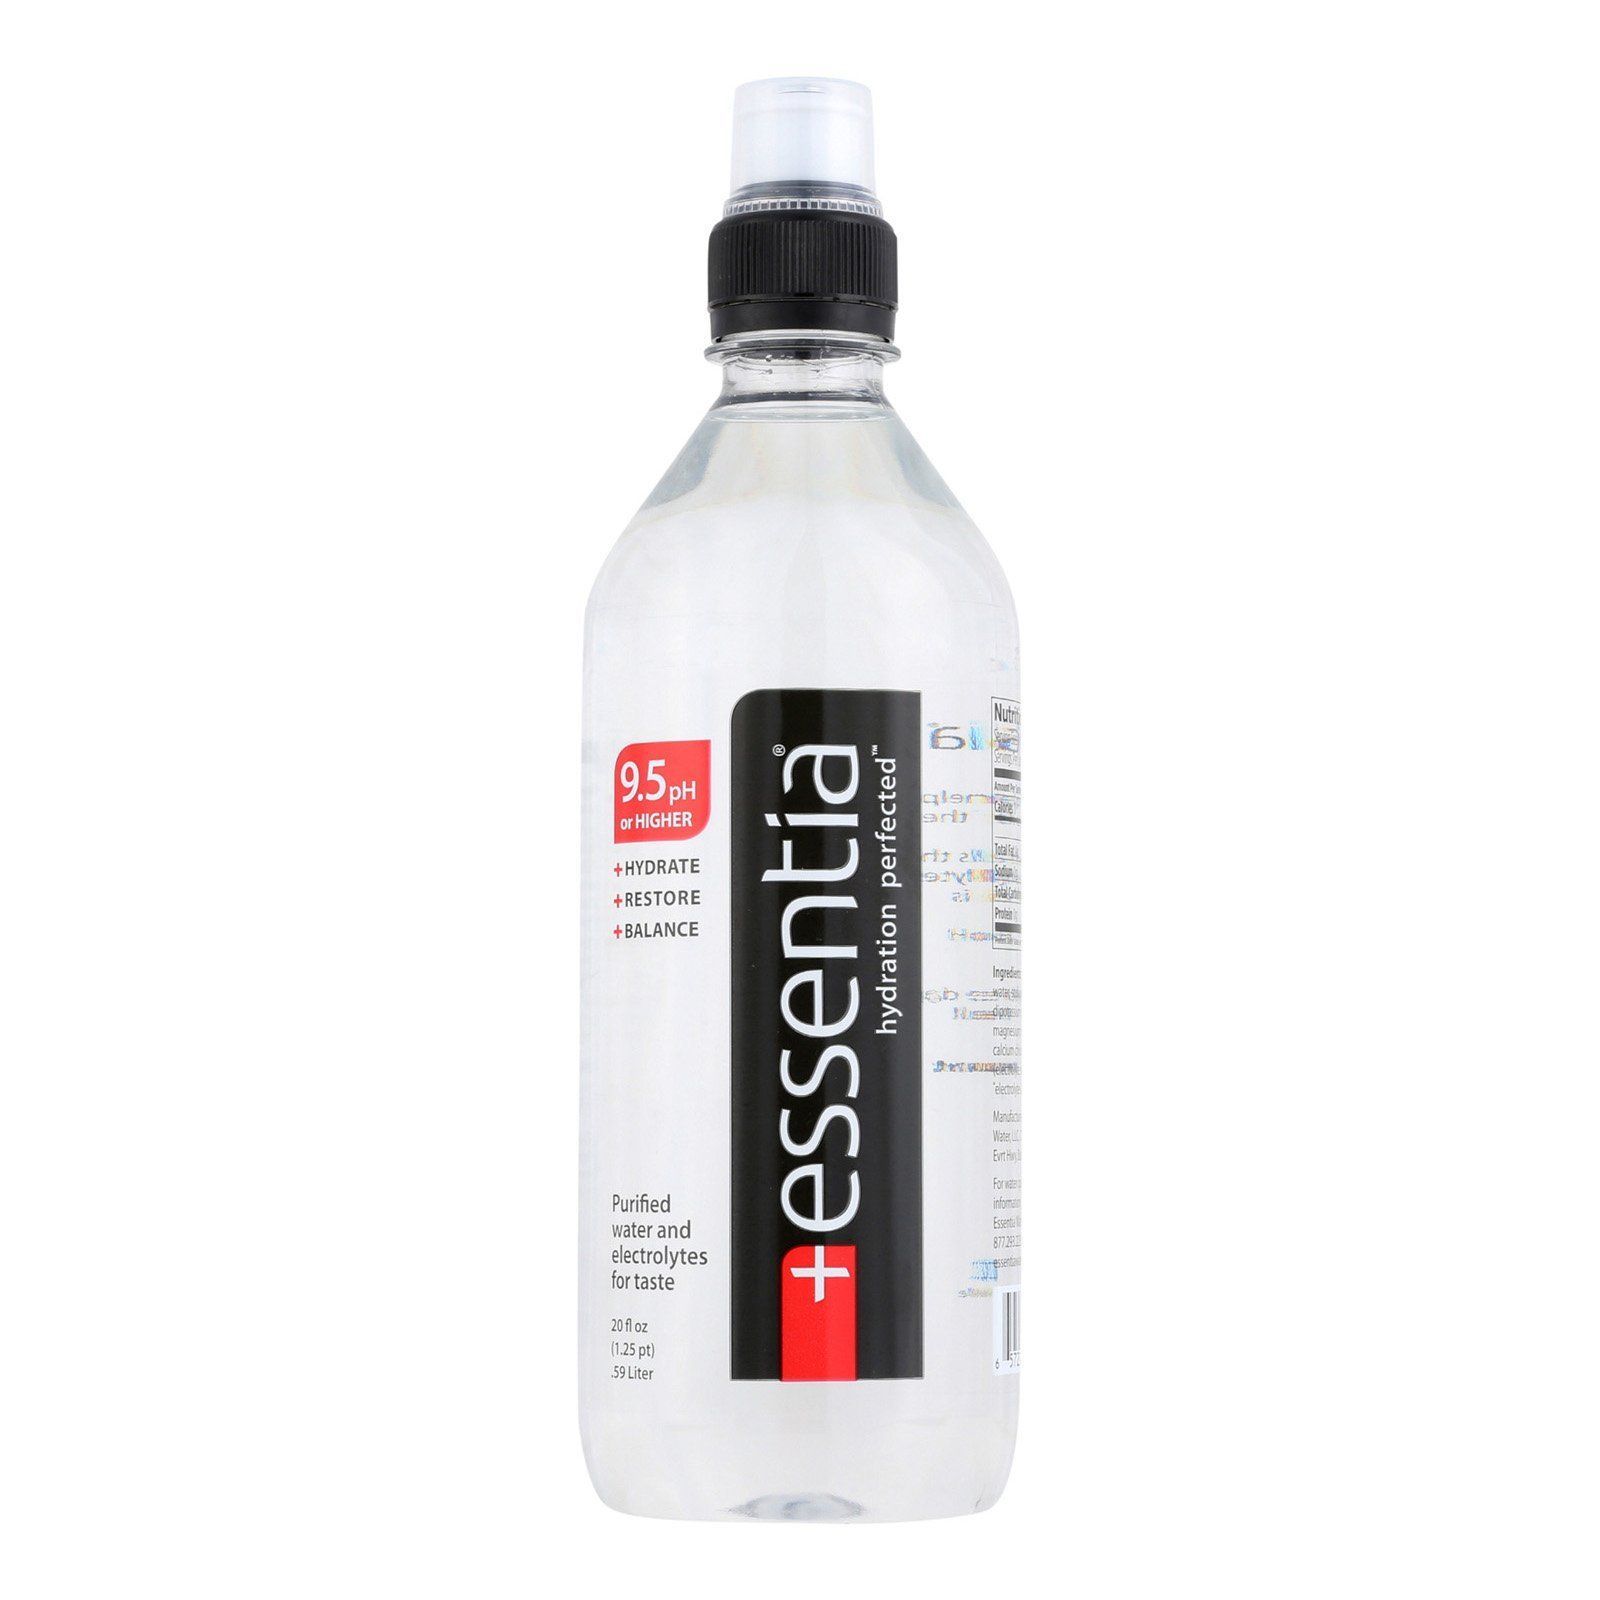 Essentia Hydration Perfected Drinking Water 9 5 Ph Case Of 24 20 Oz Perfect Drinks Drinking Water Ph Water